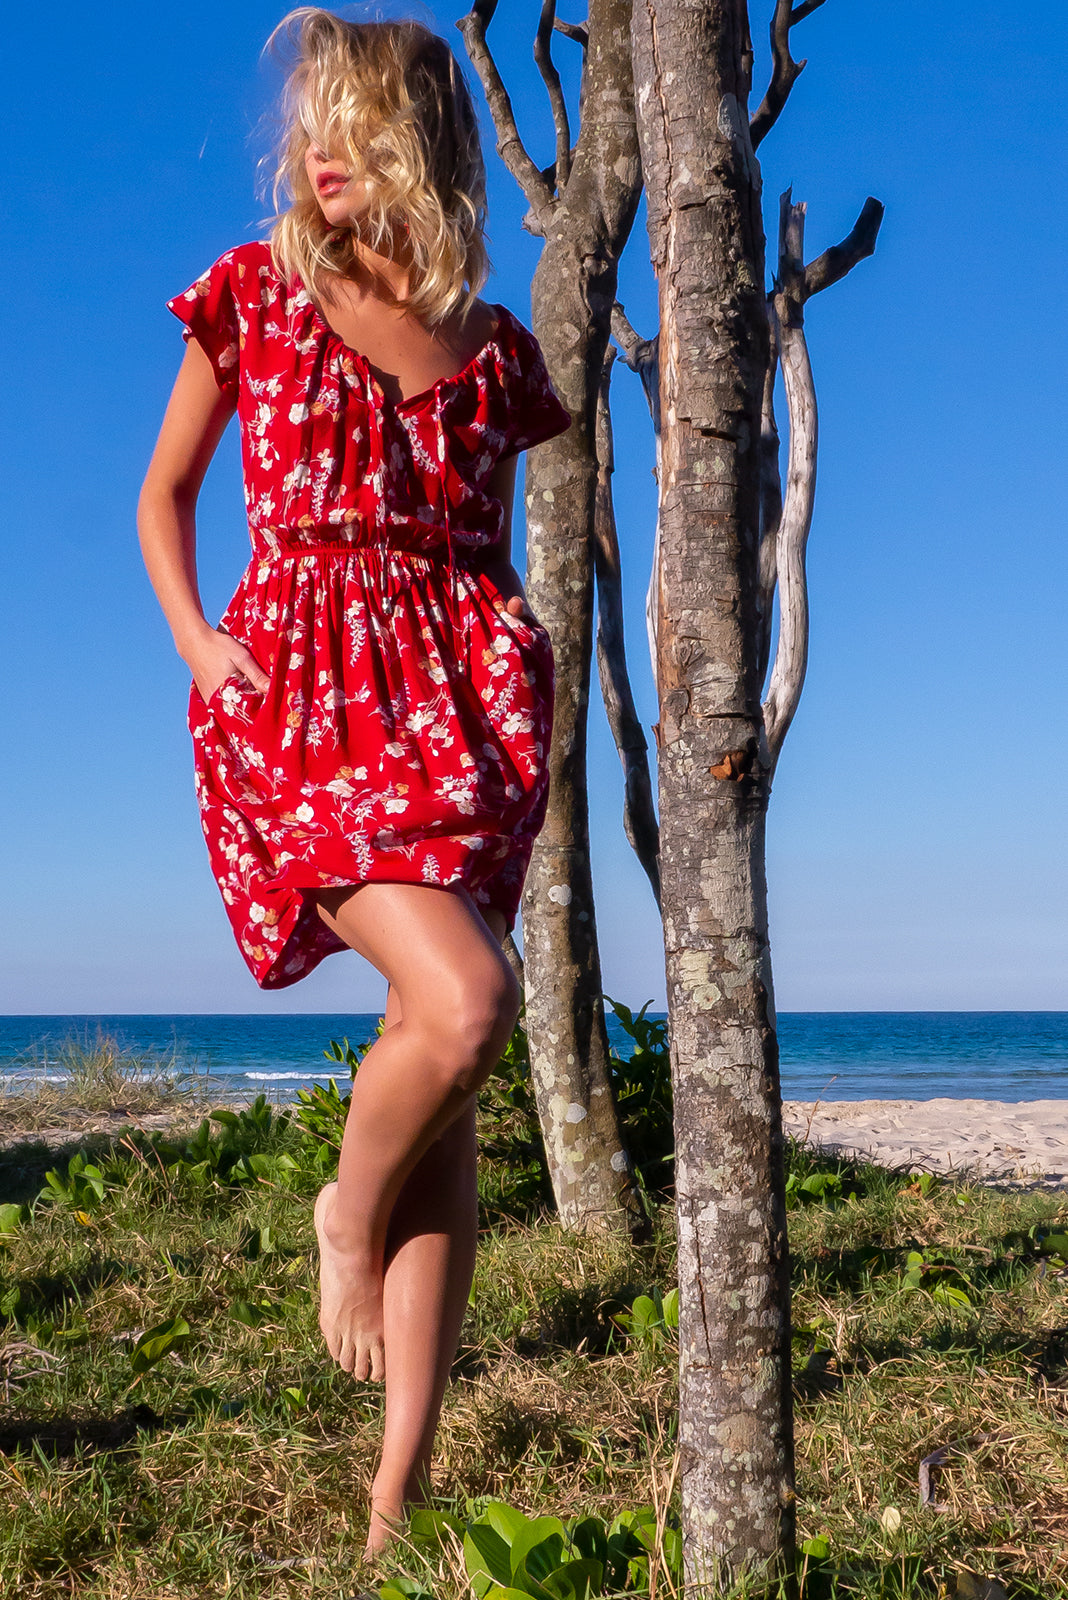 The Ace red Lava Dress has adjustable neckline with ties, cap sleeves, elasticated waist side pockets and 100% viscose in deep red base with vintage floral print.